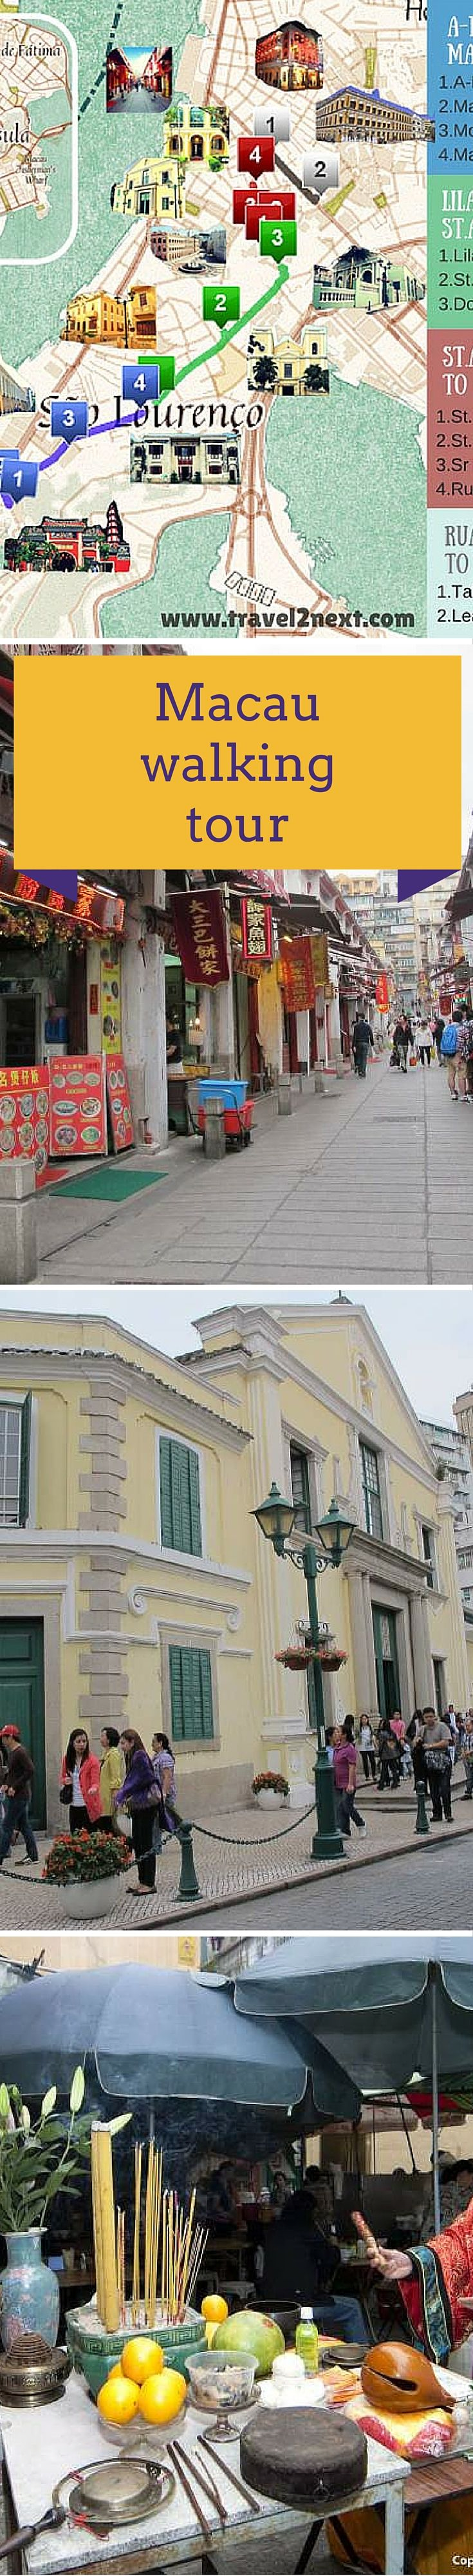 Explore Macau's Penha Peninsula with this handy map and walking tour suggestions.                                                                                                                                                                                 More